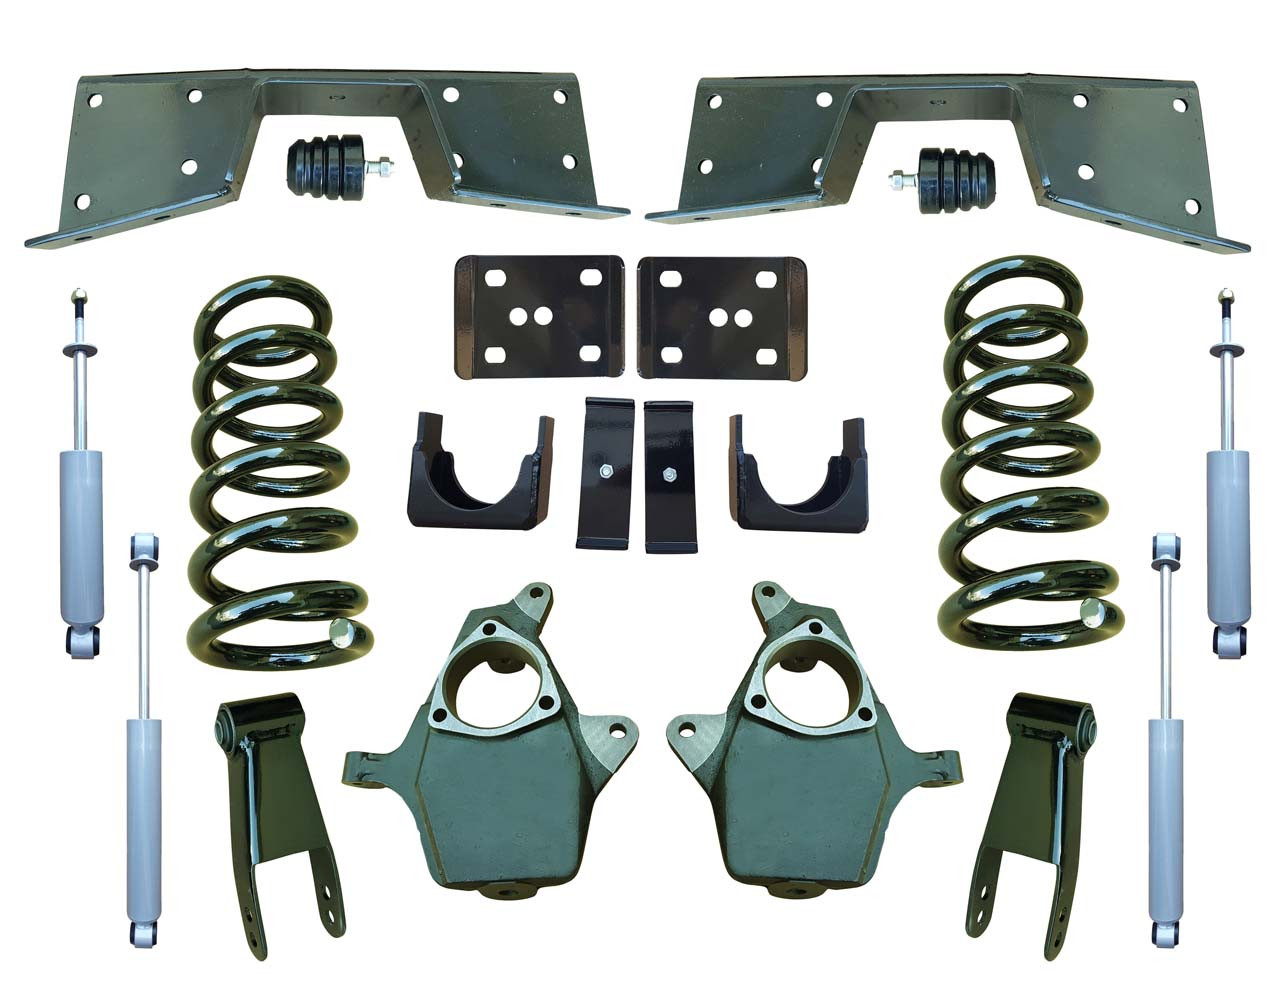 Complete 5/7 Lowering Kit for 01-06 Chevrolet Silverado